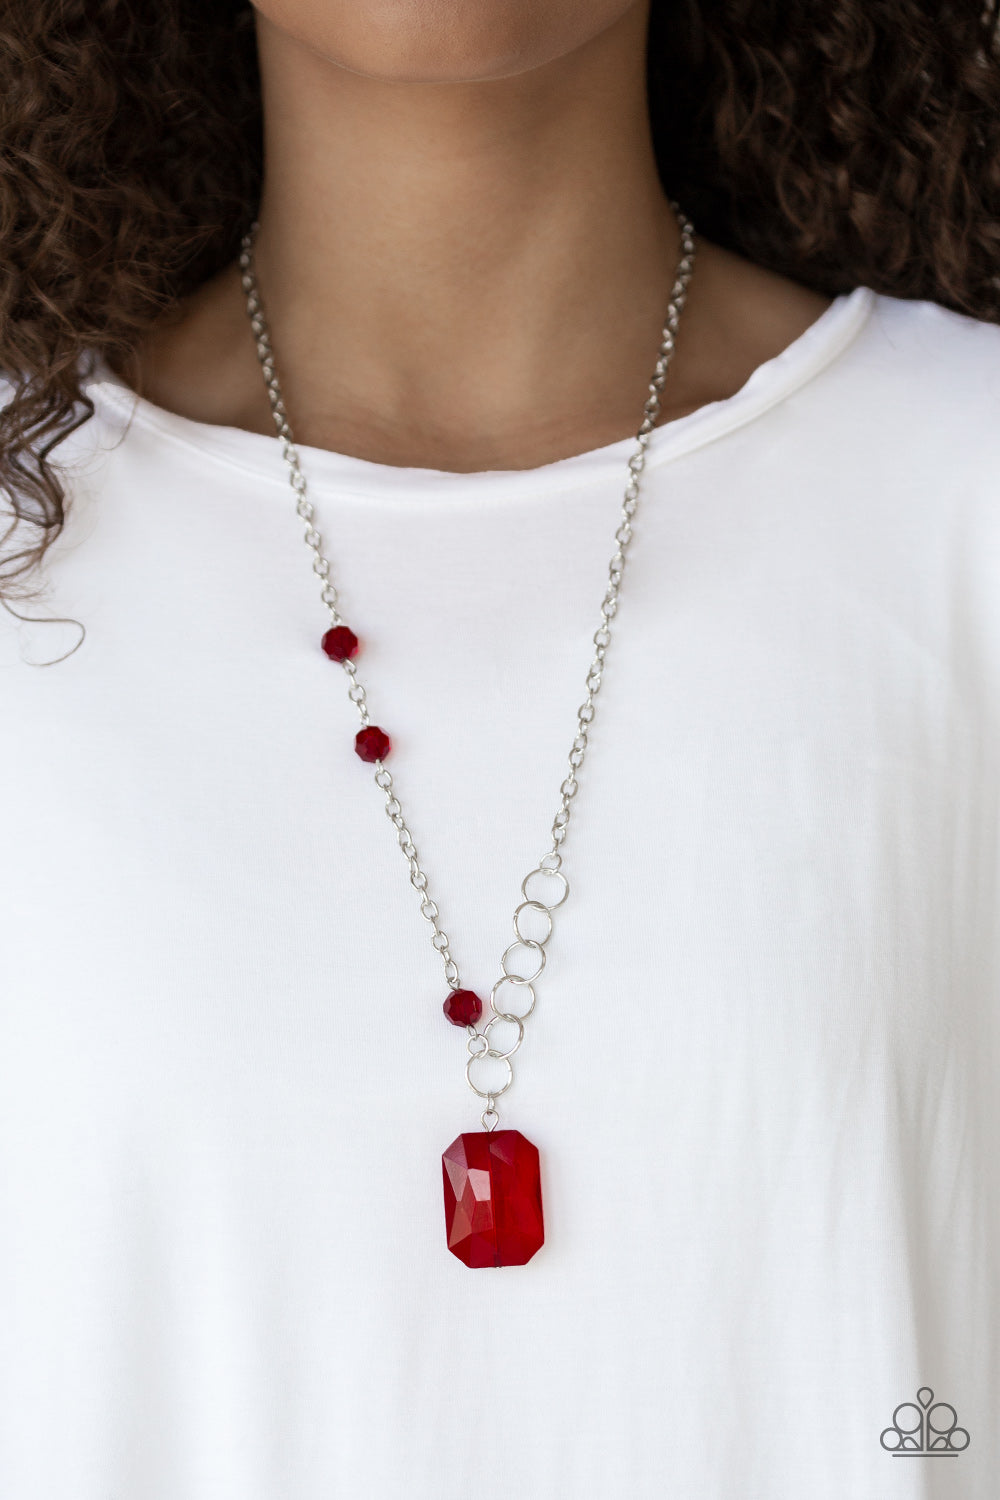 Paparazzi - Never a Dull Moment - Red Necklace Set - Classy Jewels by Linda